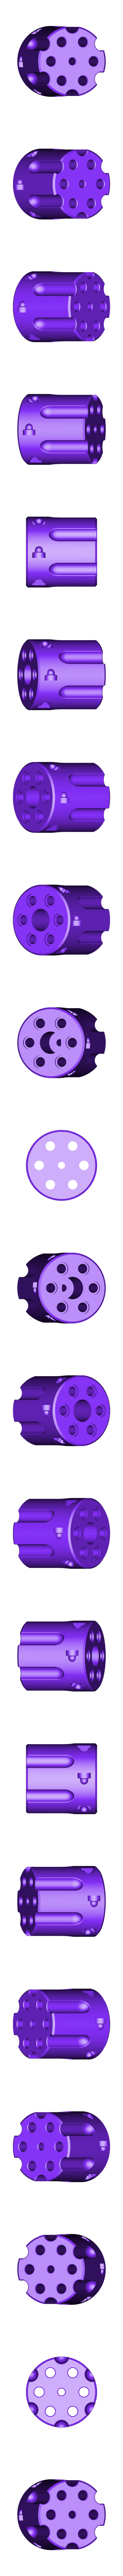 6_round_cylinder.stl Download free STL file Revolver Cylinder Exercise (HOW TO 3,4,5,6 & 12 shots) • 3D printer model, MuSSy